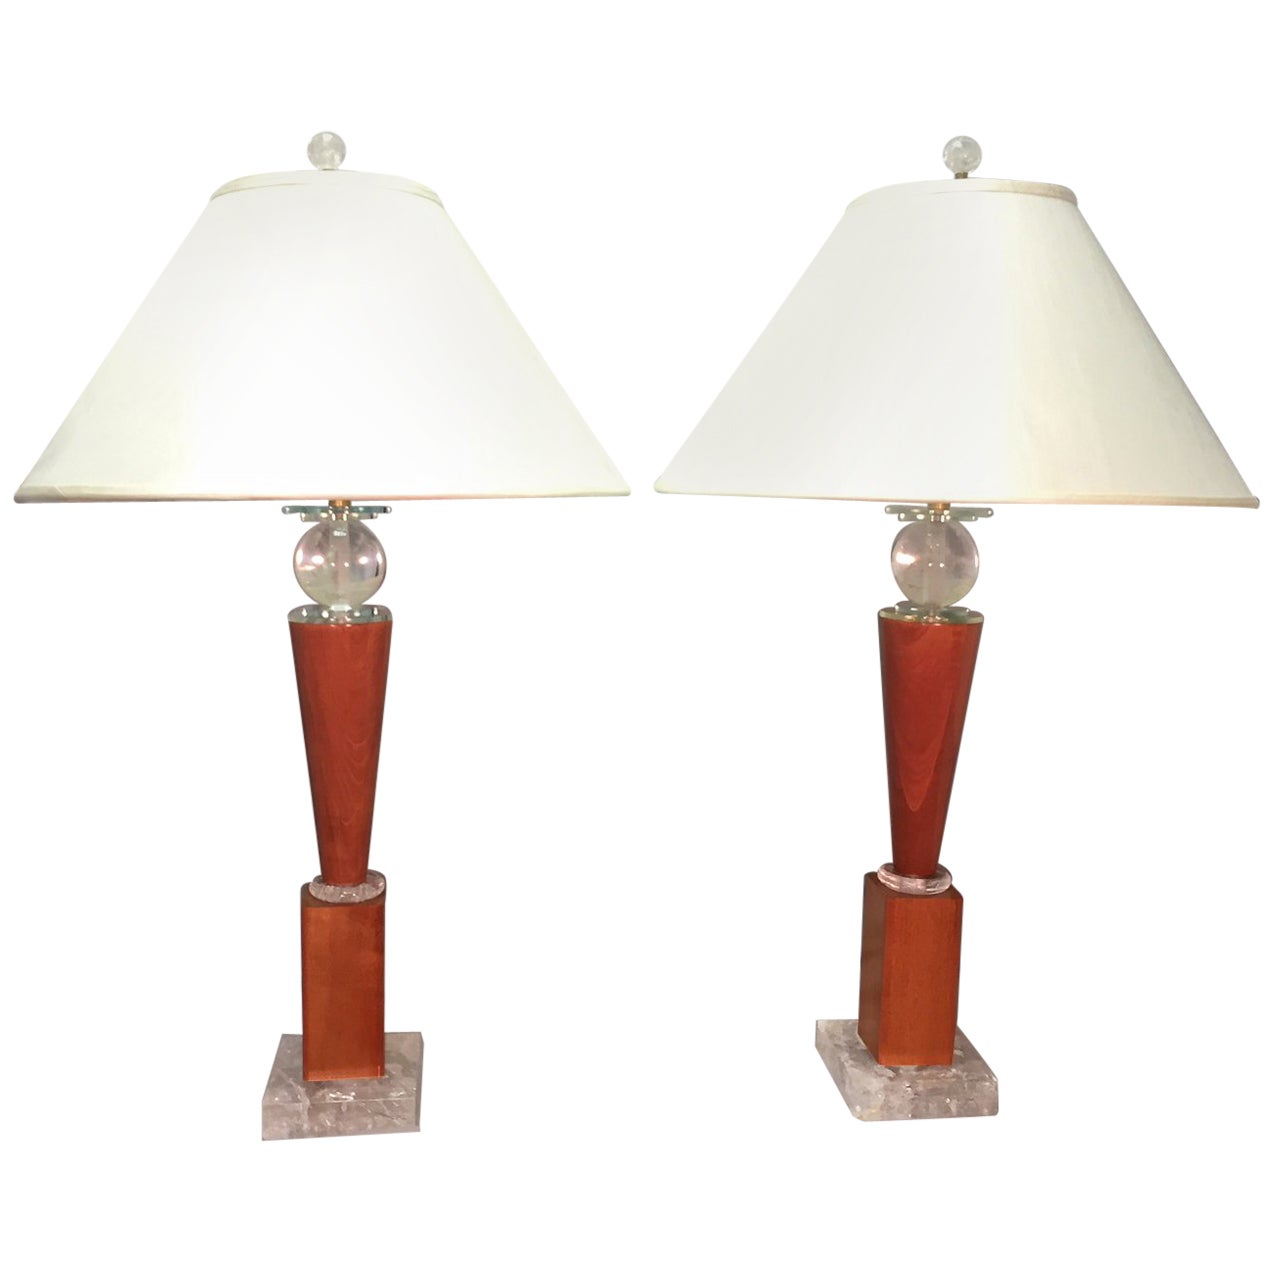 Pair of Modern Rock Crystal and Wood Lamps with Dupioni Silk Shades